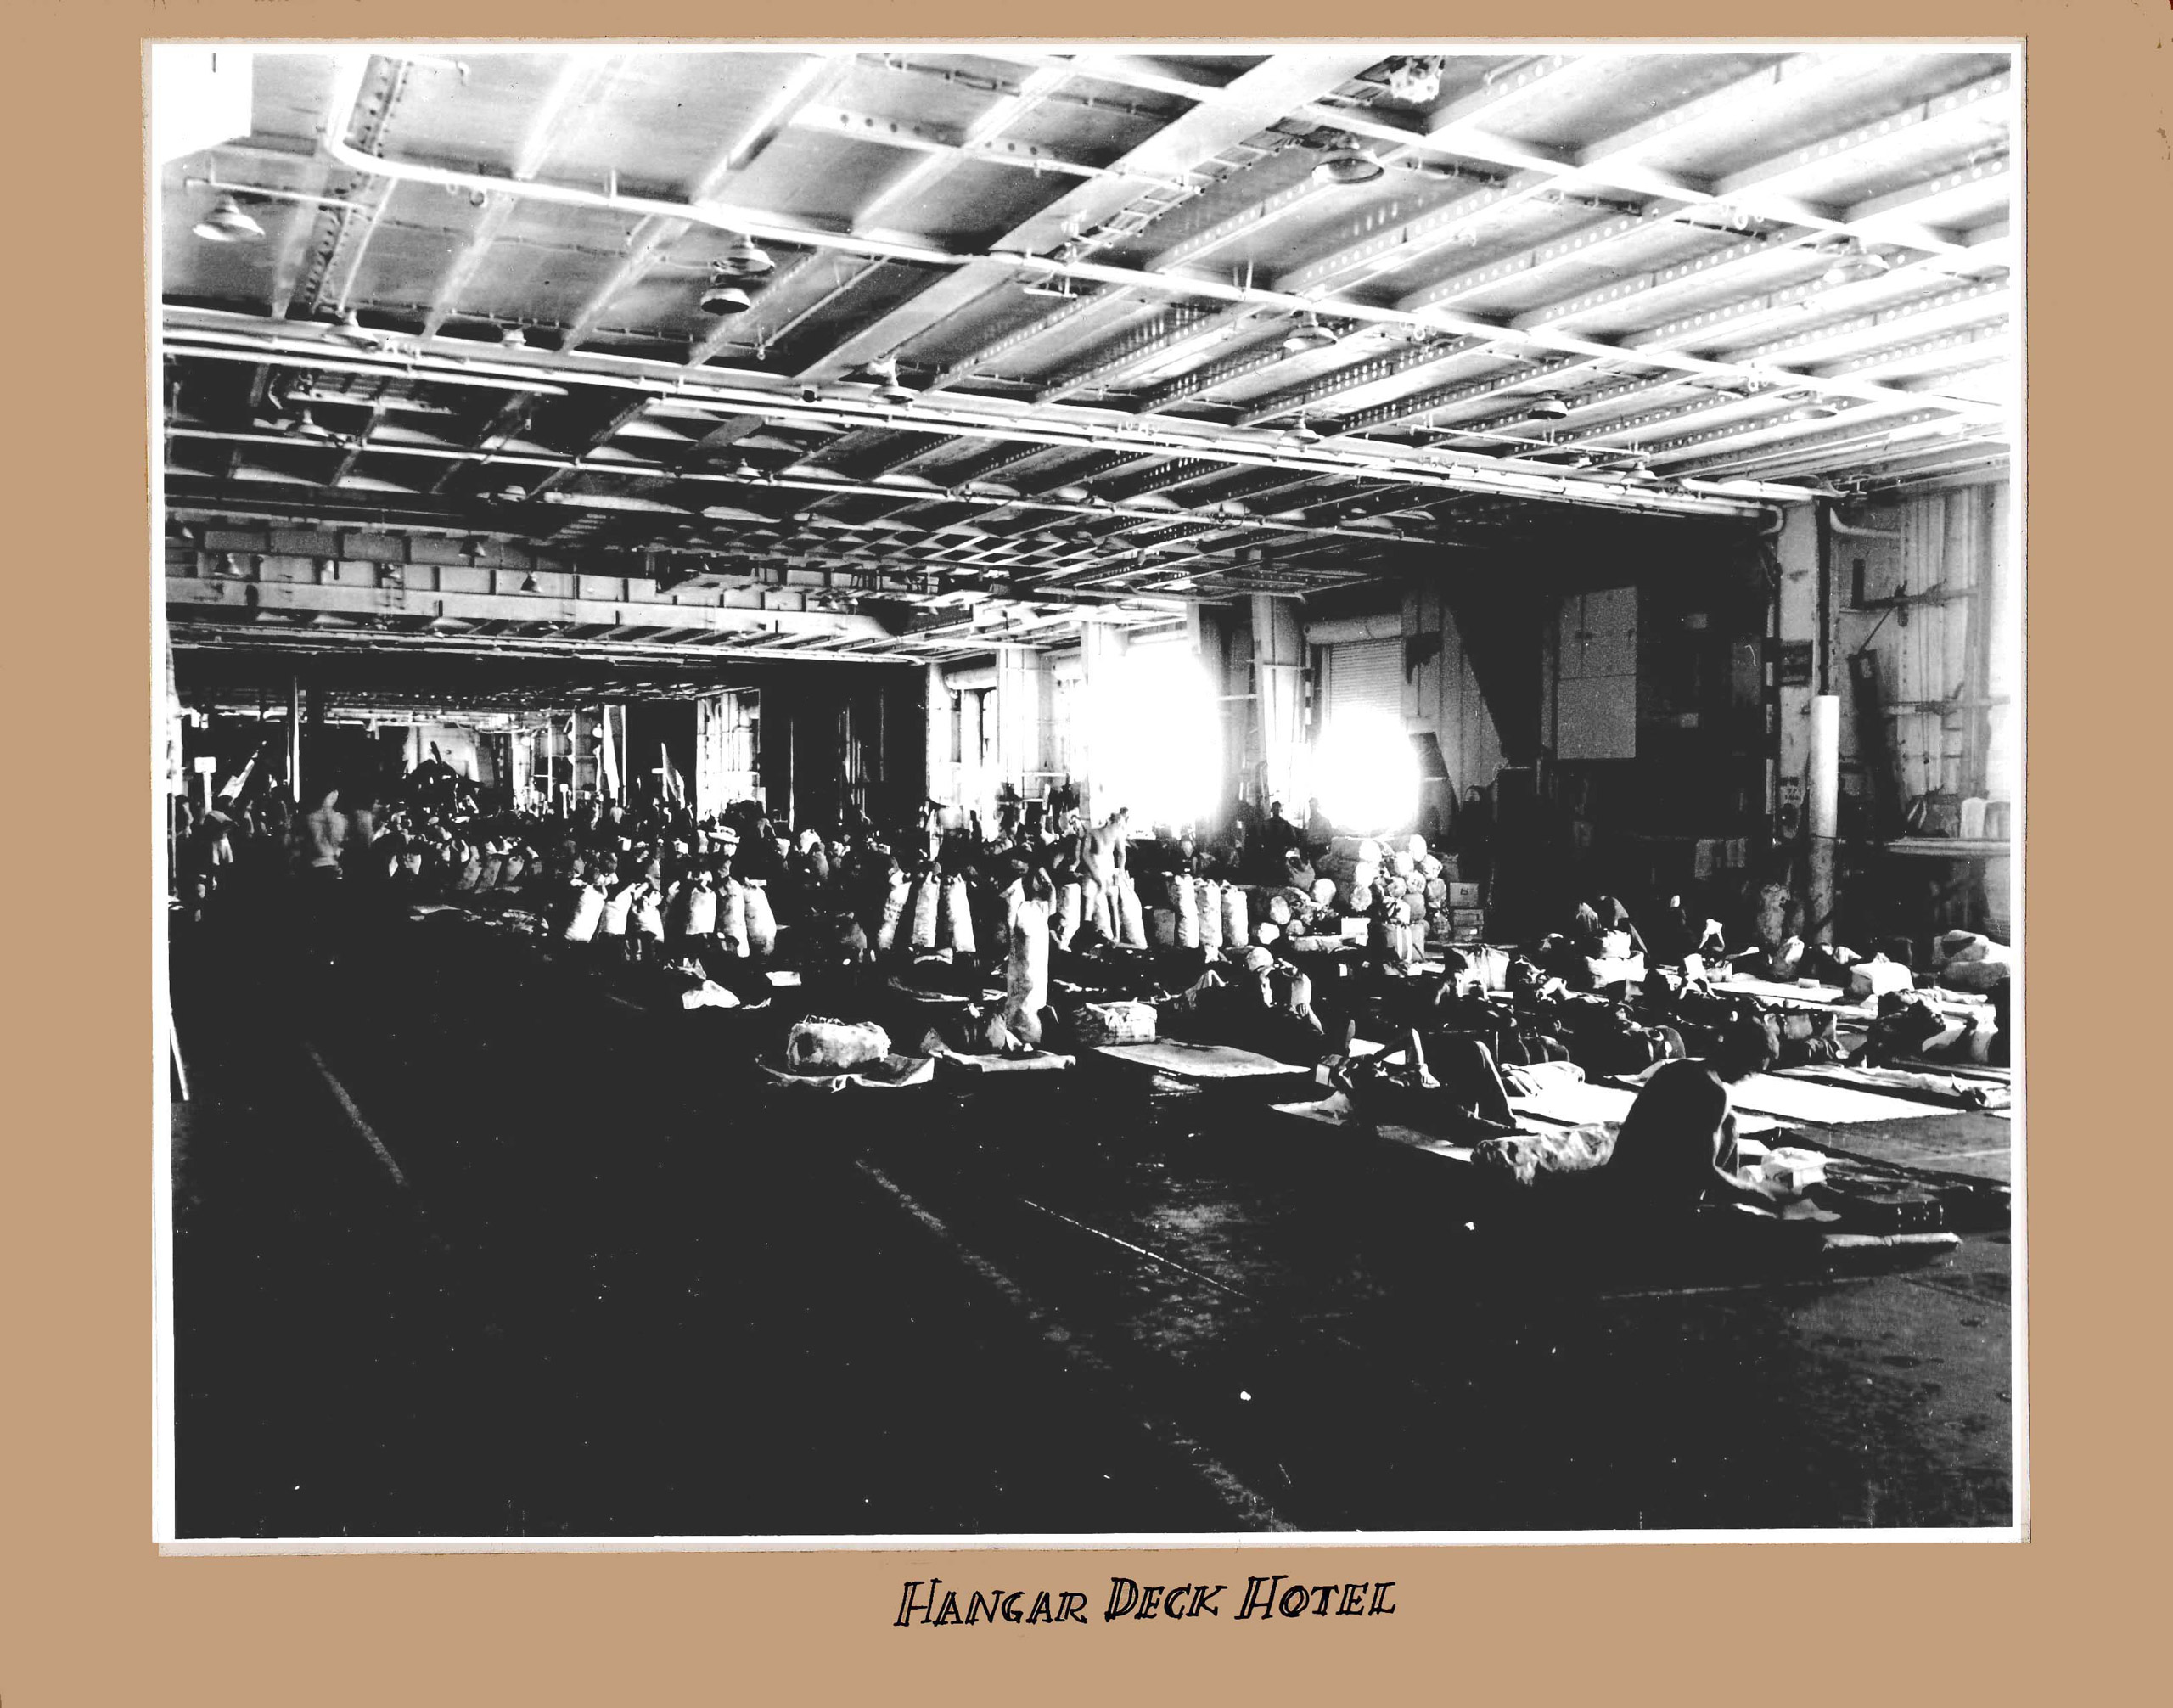 Troops heading back to the States as part of Operation Magic Carpet crowd the hangar deck of Wasp (CV 18). This image is part of a photograph album that was acquired by RADM Joseph C. Clifton during his service as Executive Officer of Wasp (CV 18) during World War II.